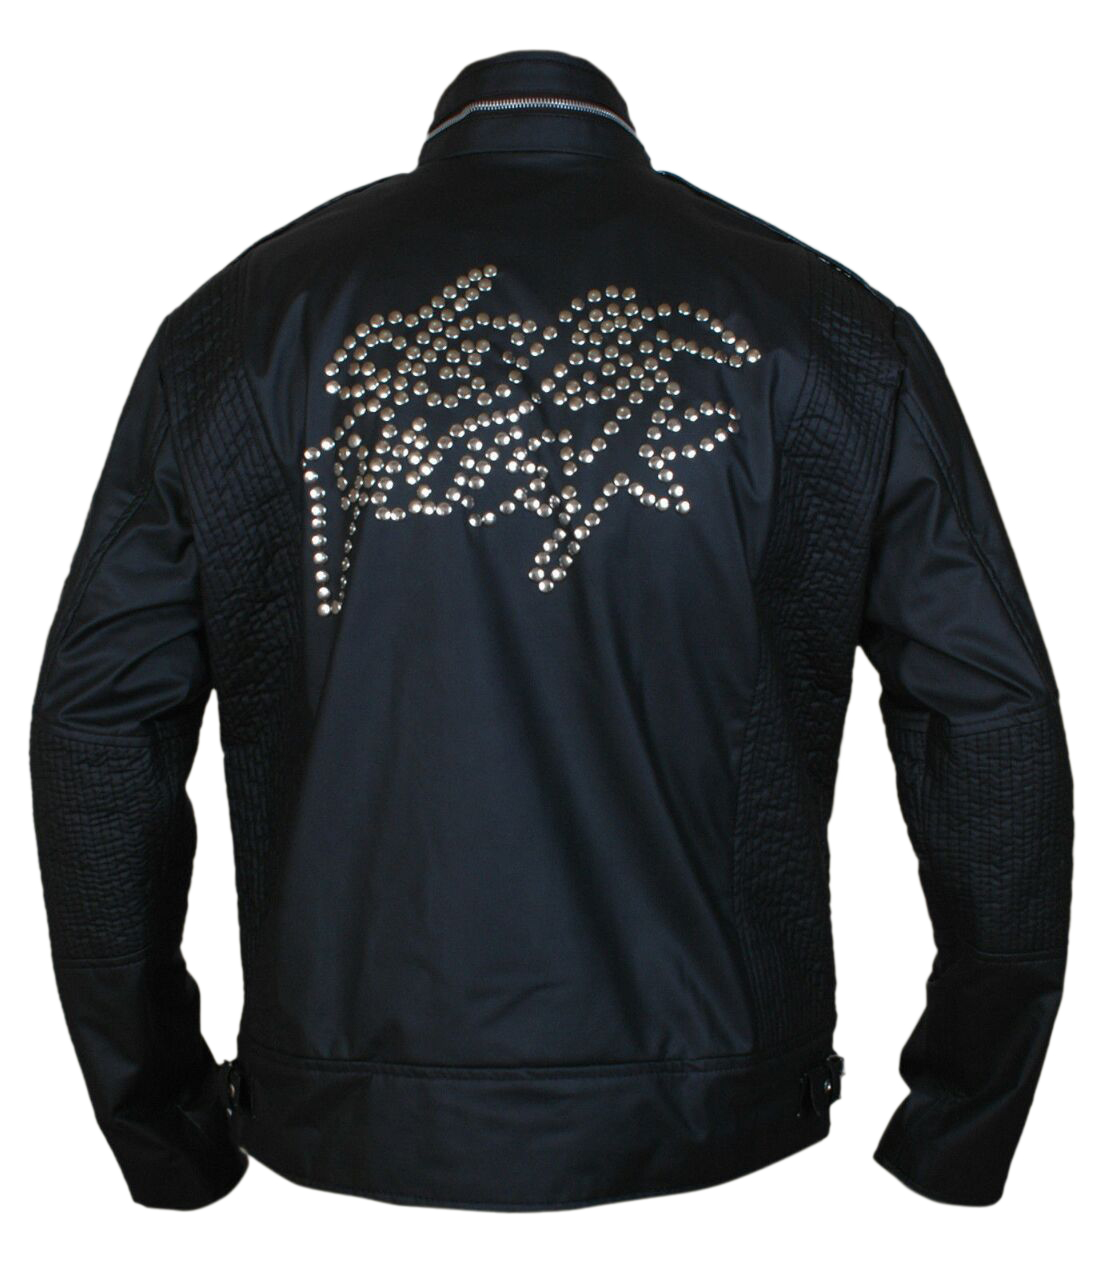 Daft Punk Eloctroma Get Lucky Leather Jacket